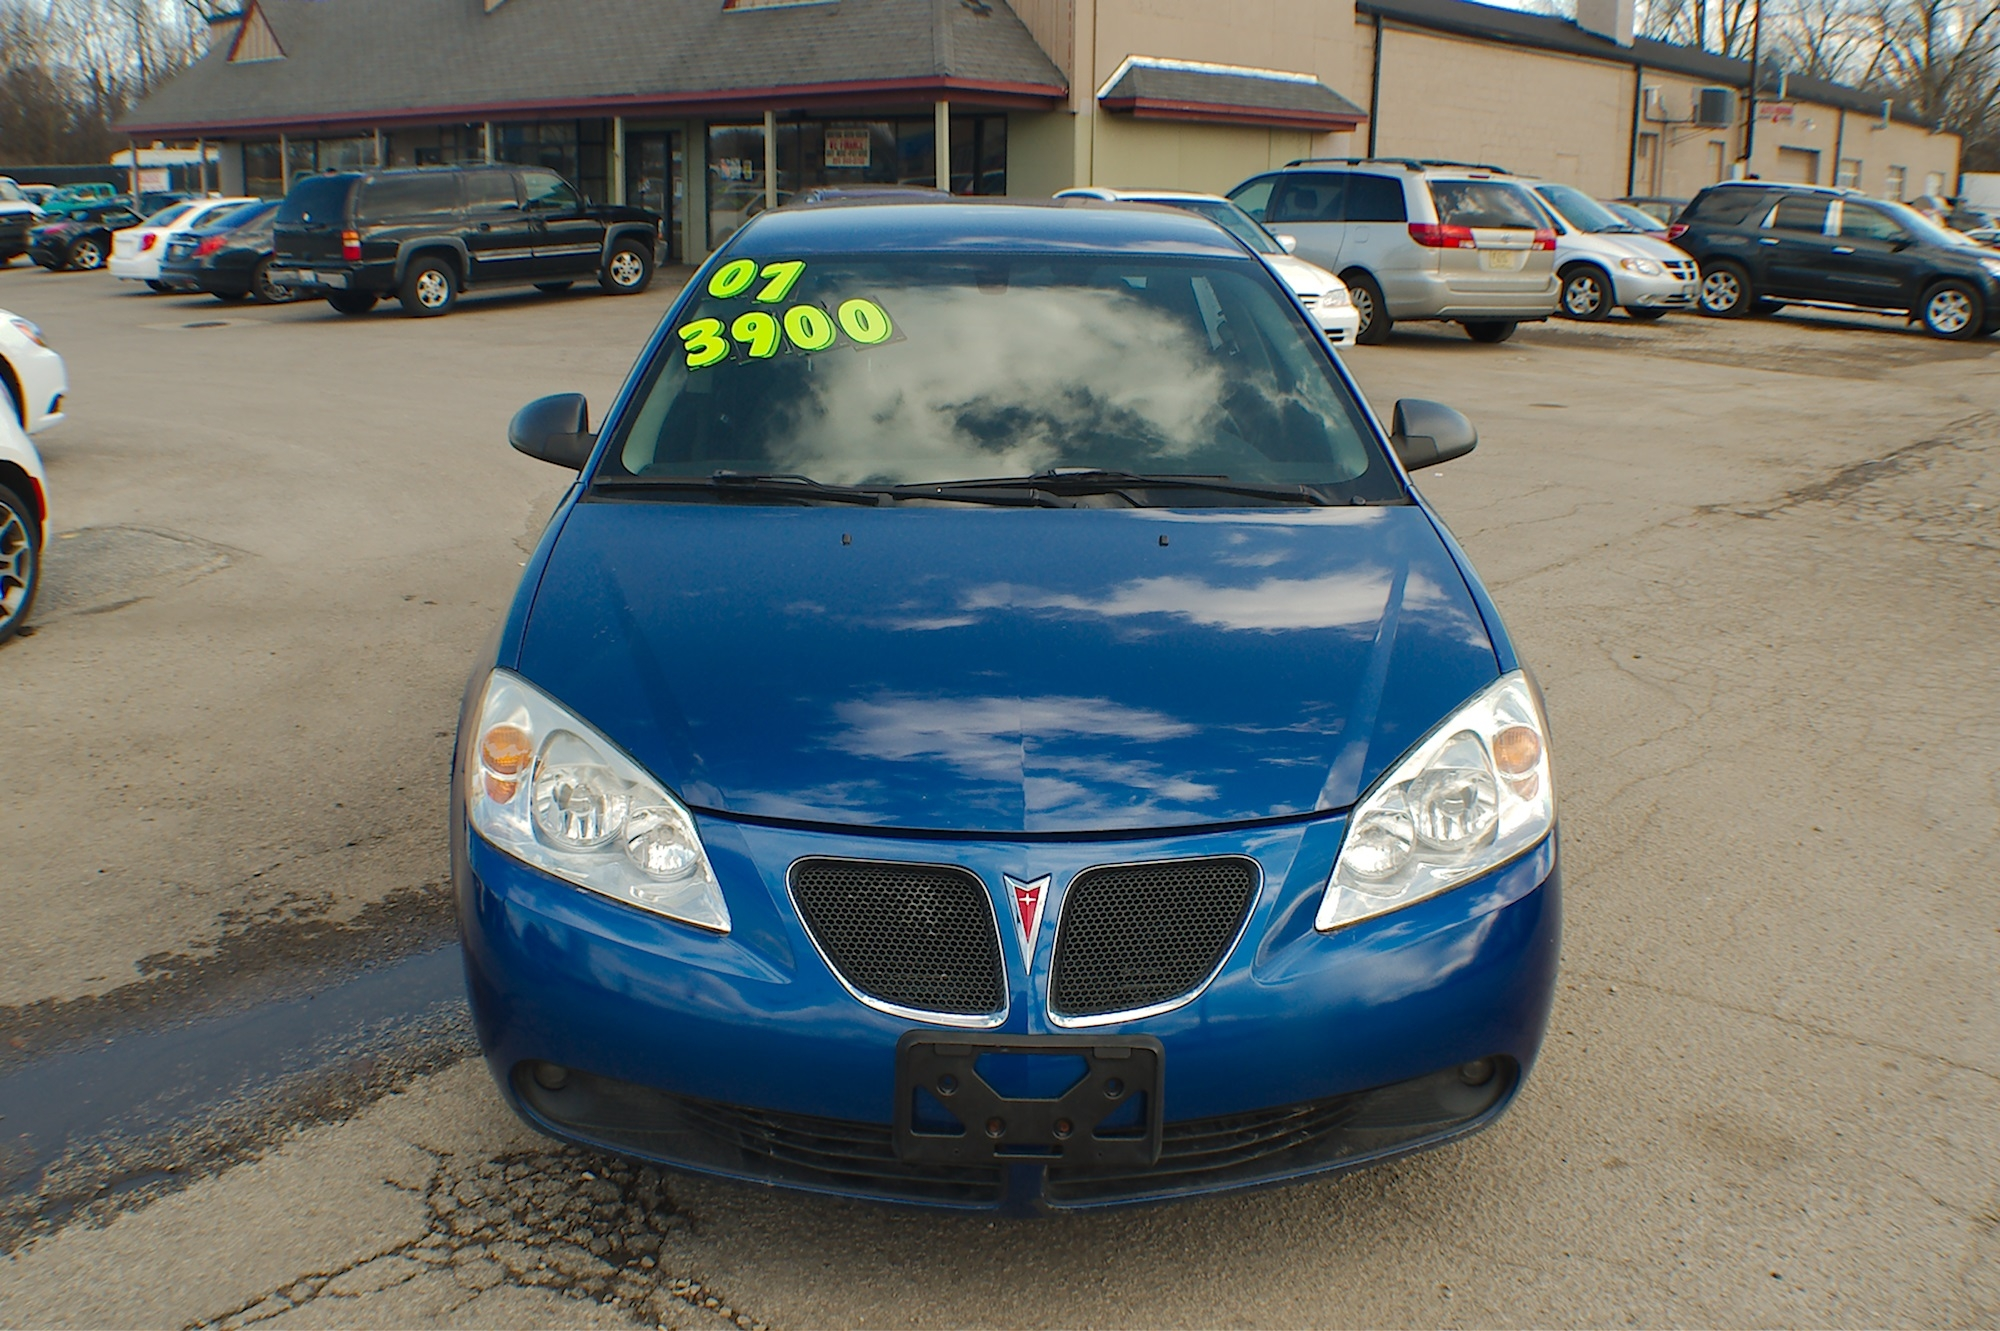 2007 Pontiac G6 Blue Sedan Used Car Sale Gurnee Kenosha Mchenry Chicago Illinois